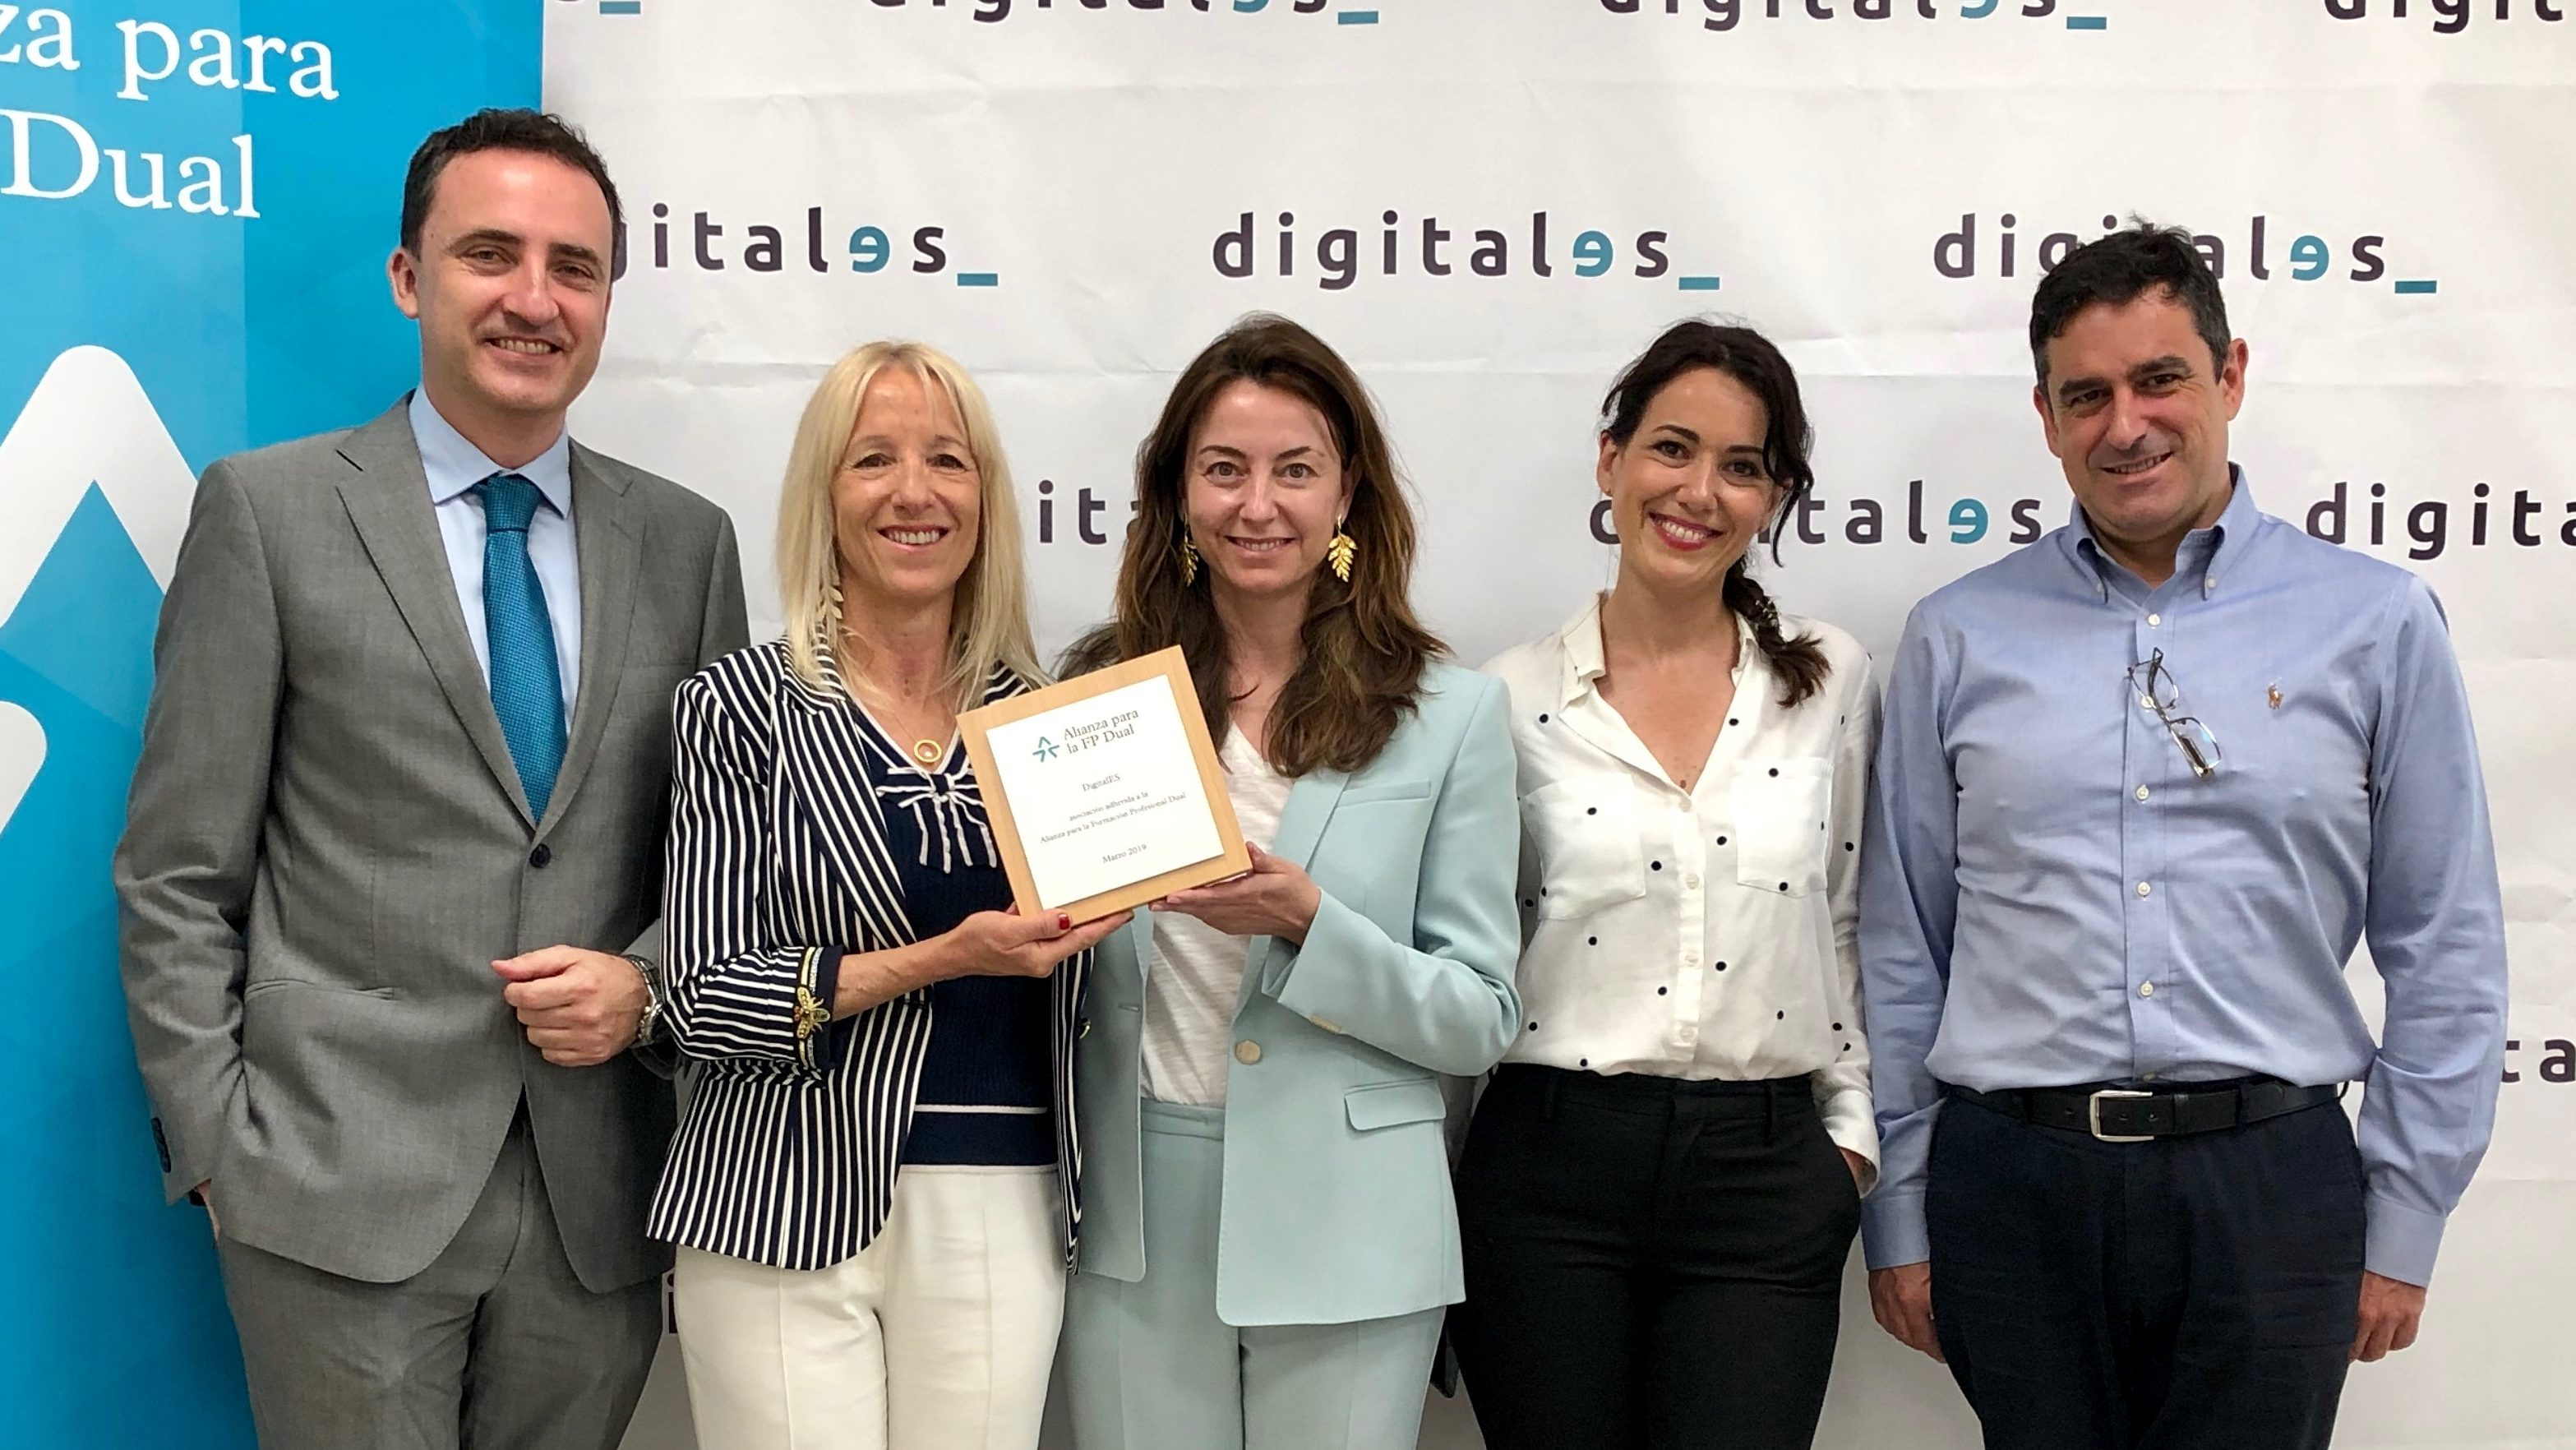 DigitalES joins the Alliance for Dual Vocational Training